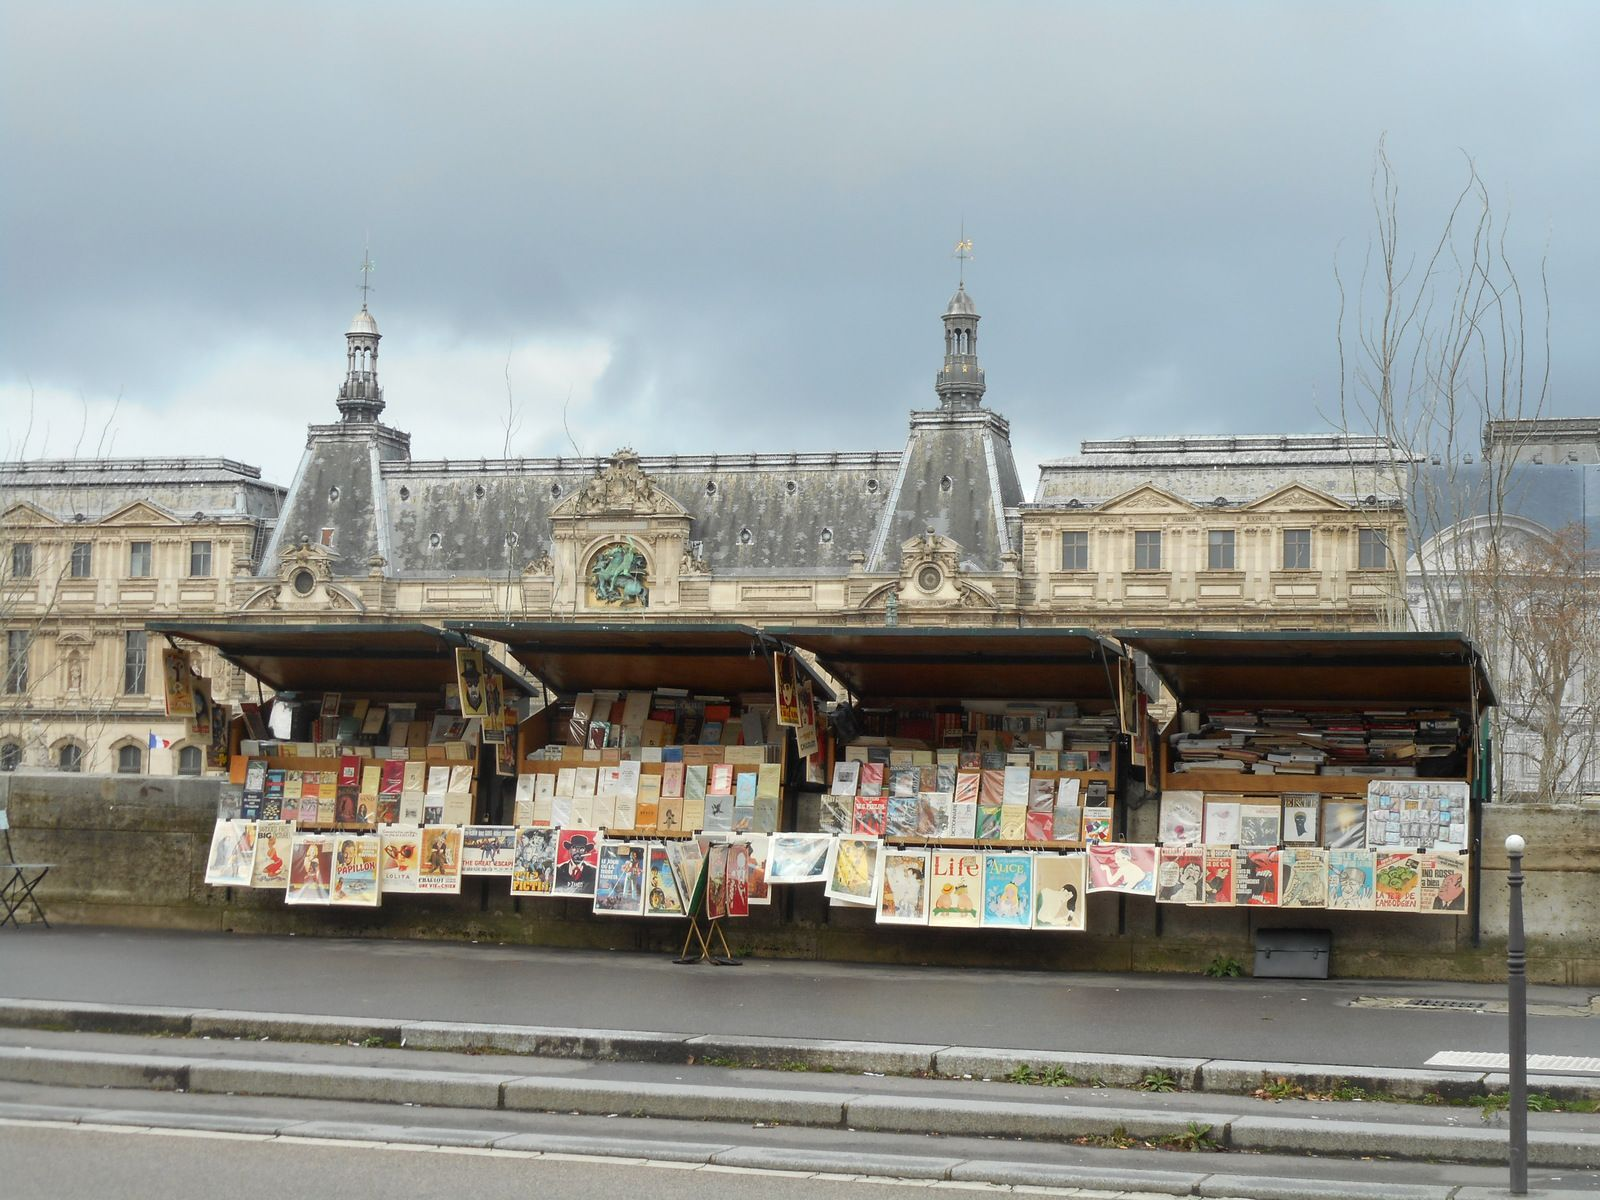 Les Bouquinistes de Paris